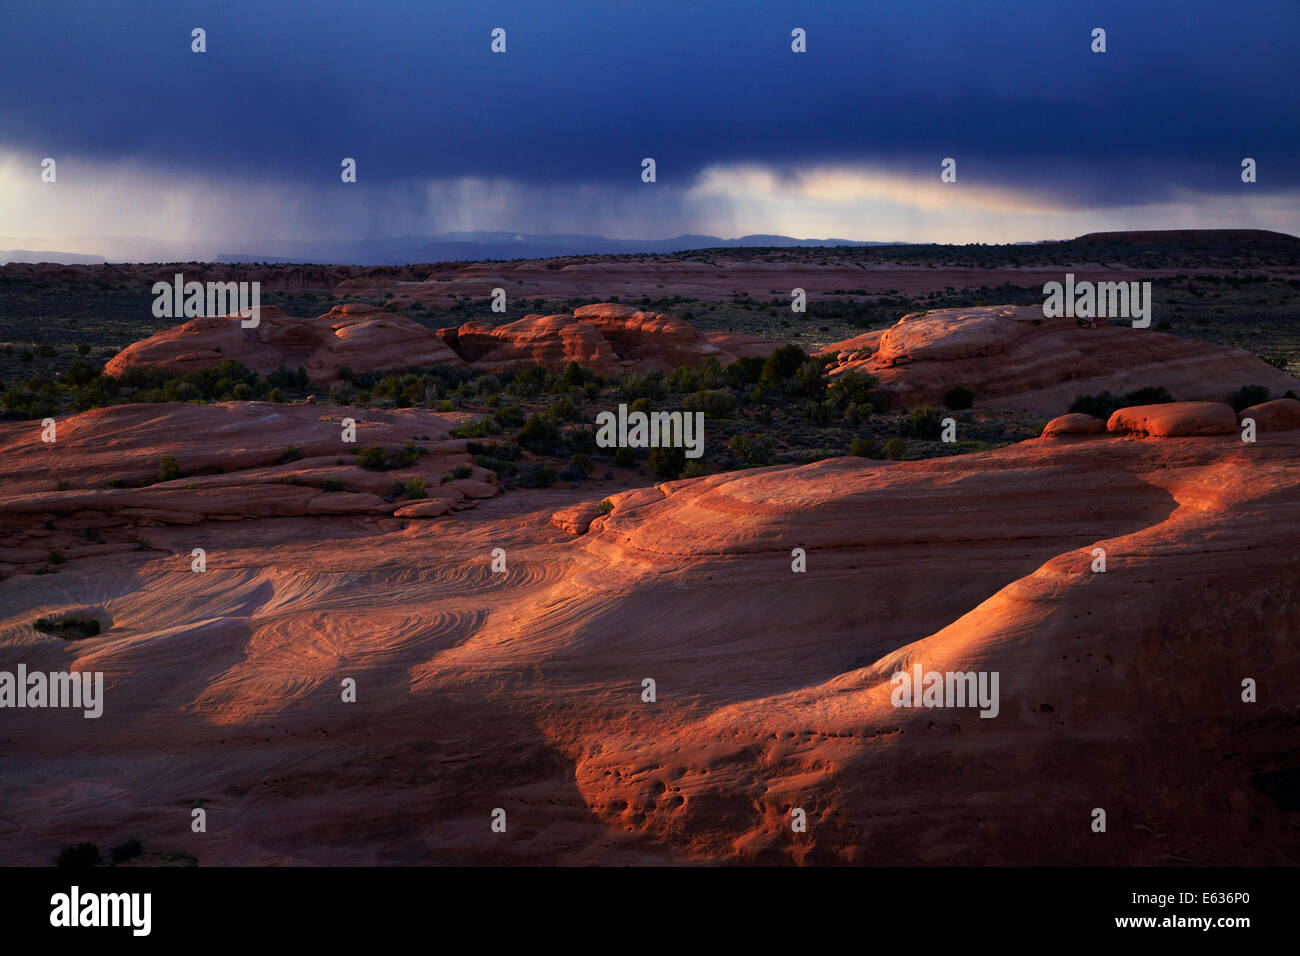 Eroded rock formations near Delicate Arch and approaching storm clouds, Arches National Park, near Moab, Utah, USA - Stock Image